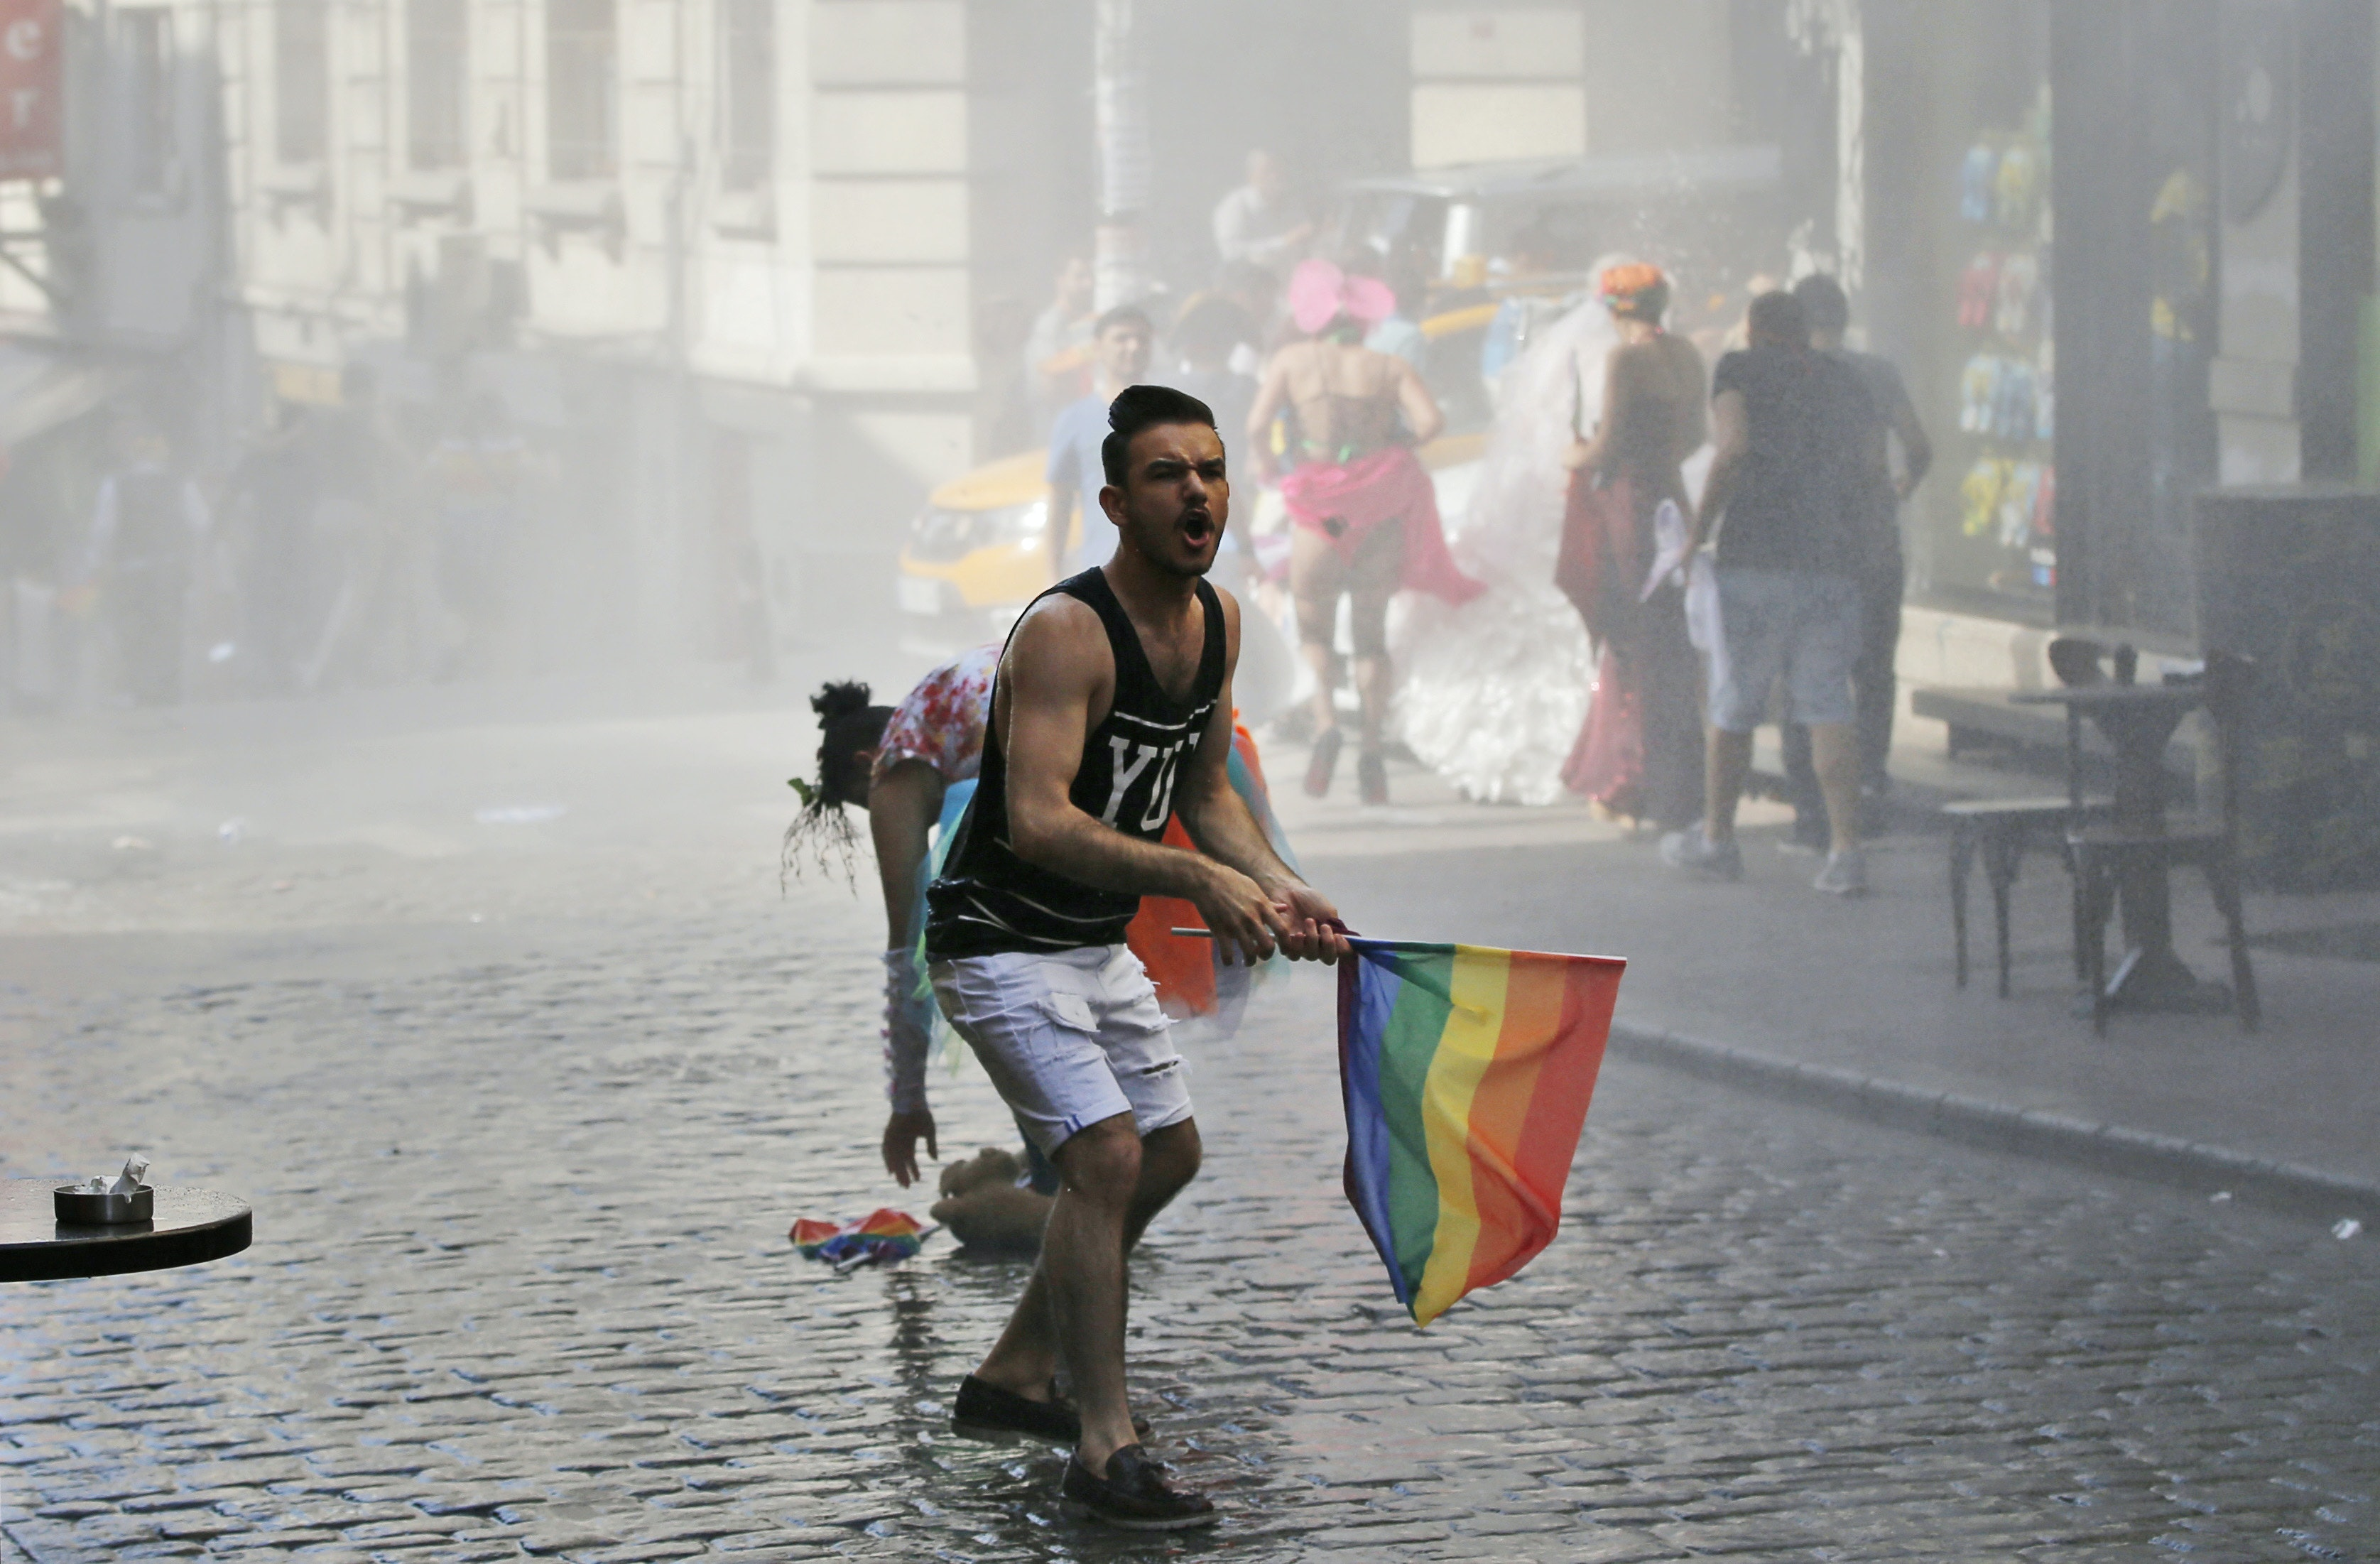 Most countries score an F on our LGBT human rights report card